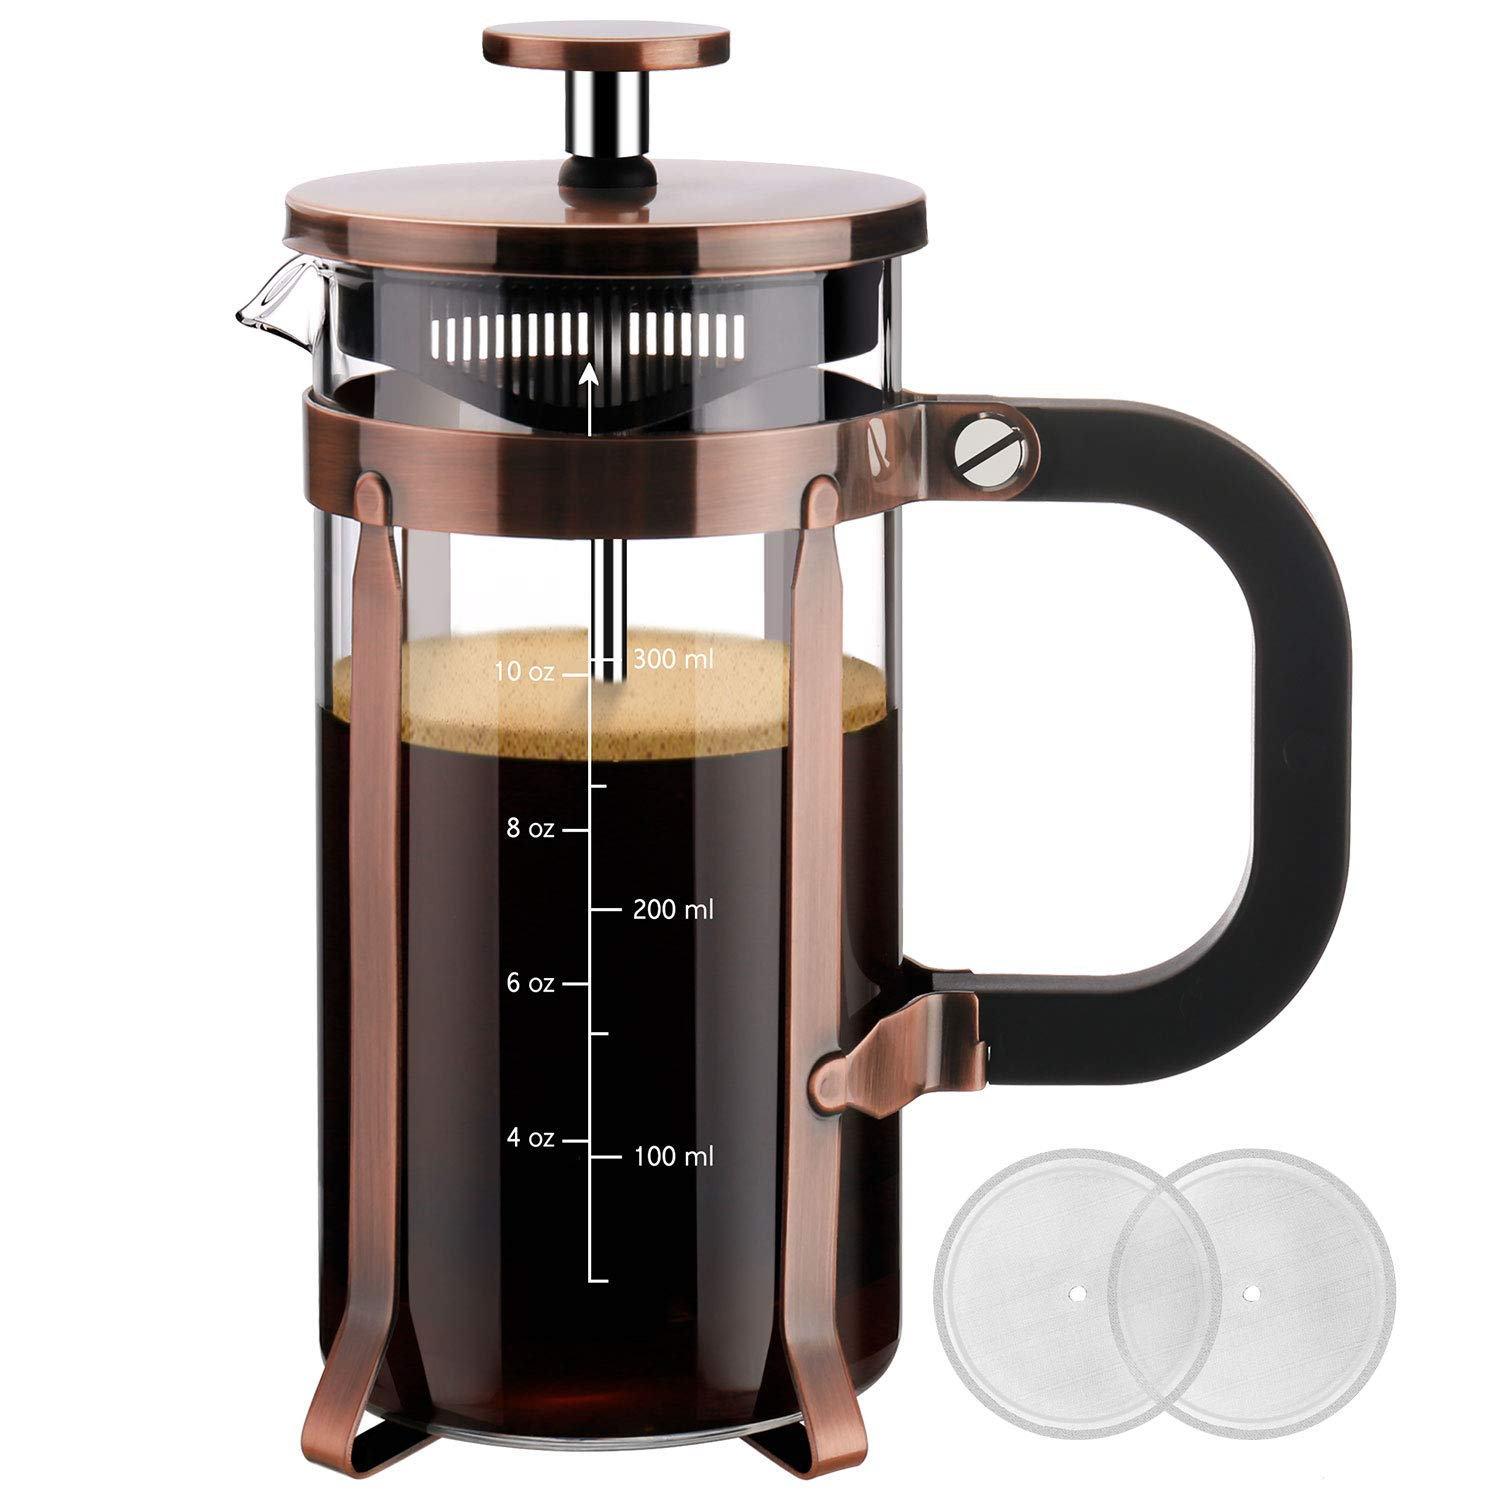 Veken French Press Coffee Maker (12oz), 304 Stainless Steel Coffee Press with 4 Filter Screens, Durable Easy Clean Heat Resistant Borosilicate Glass - 100% BPA Free by Veken (Image #1)